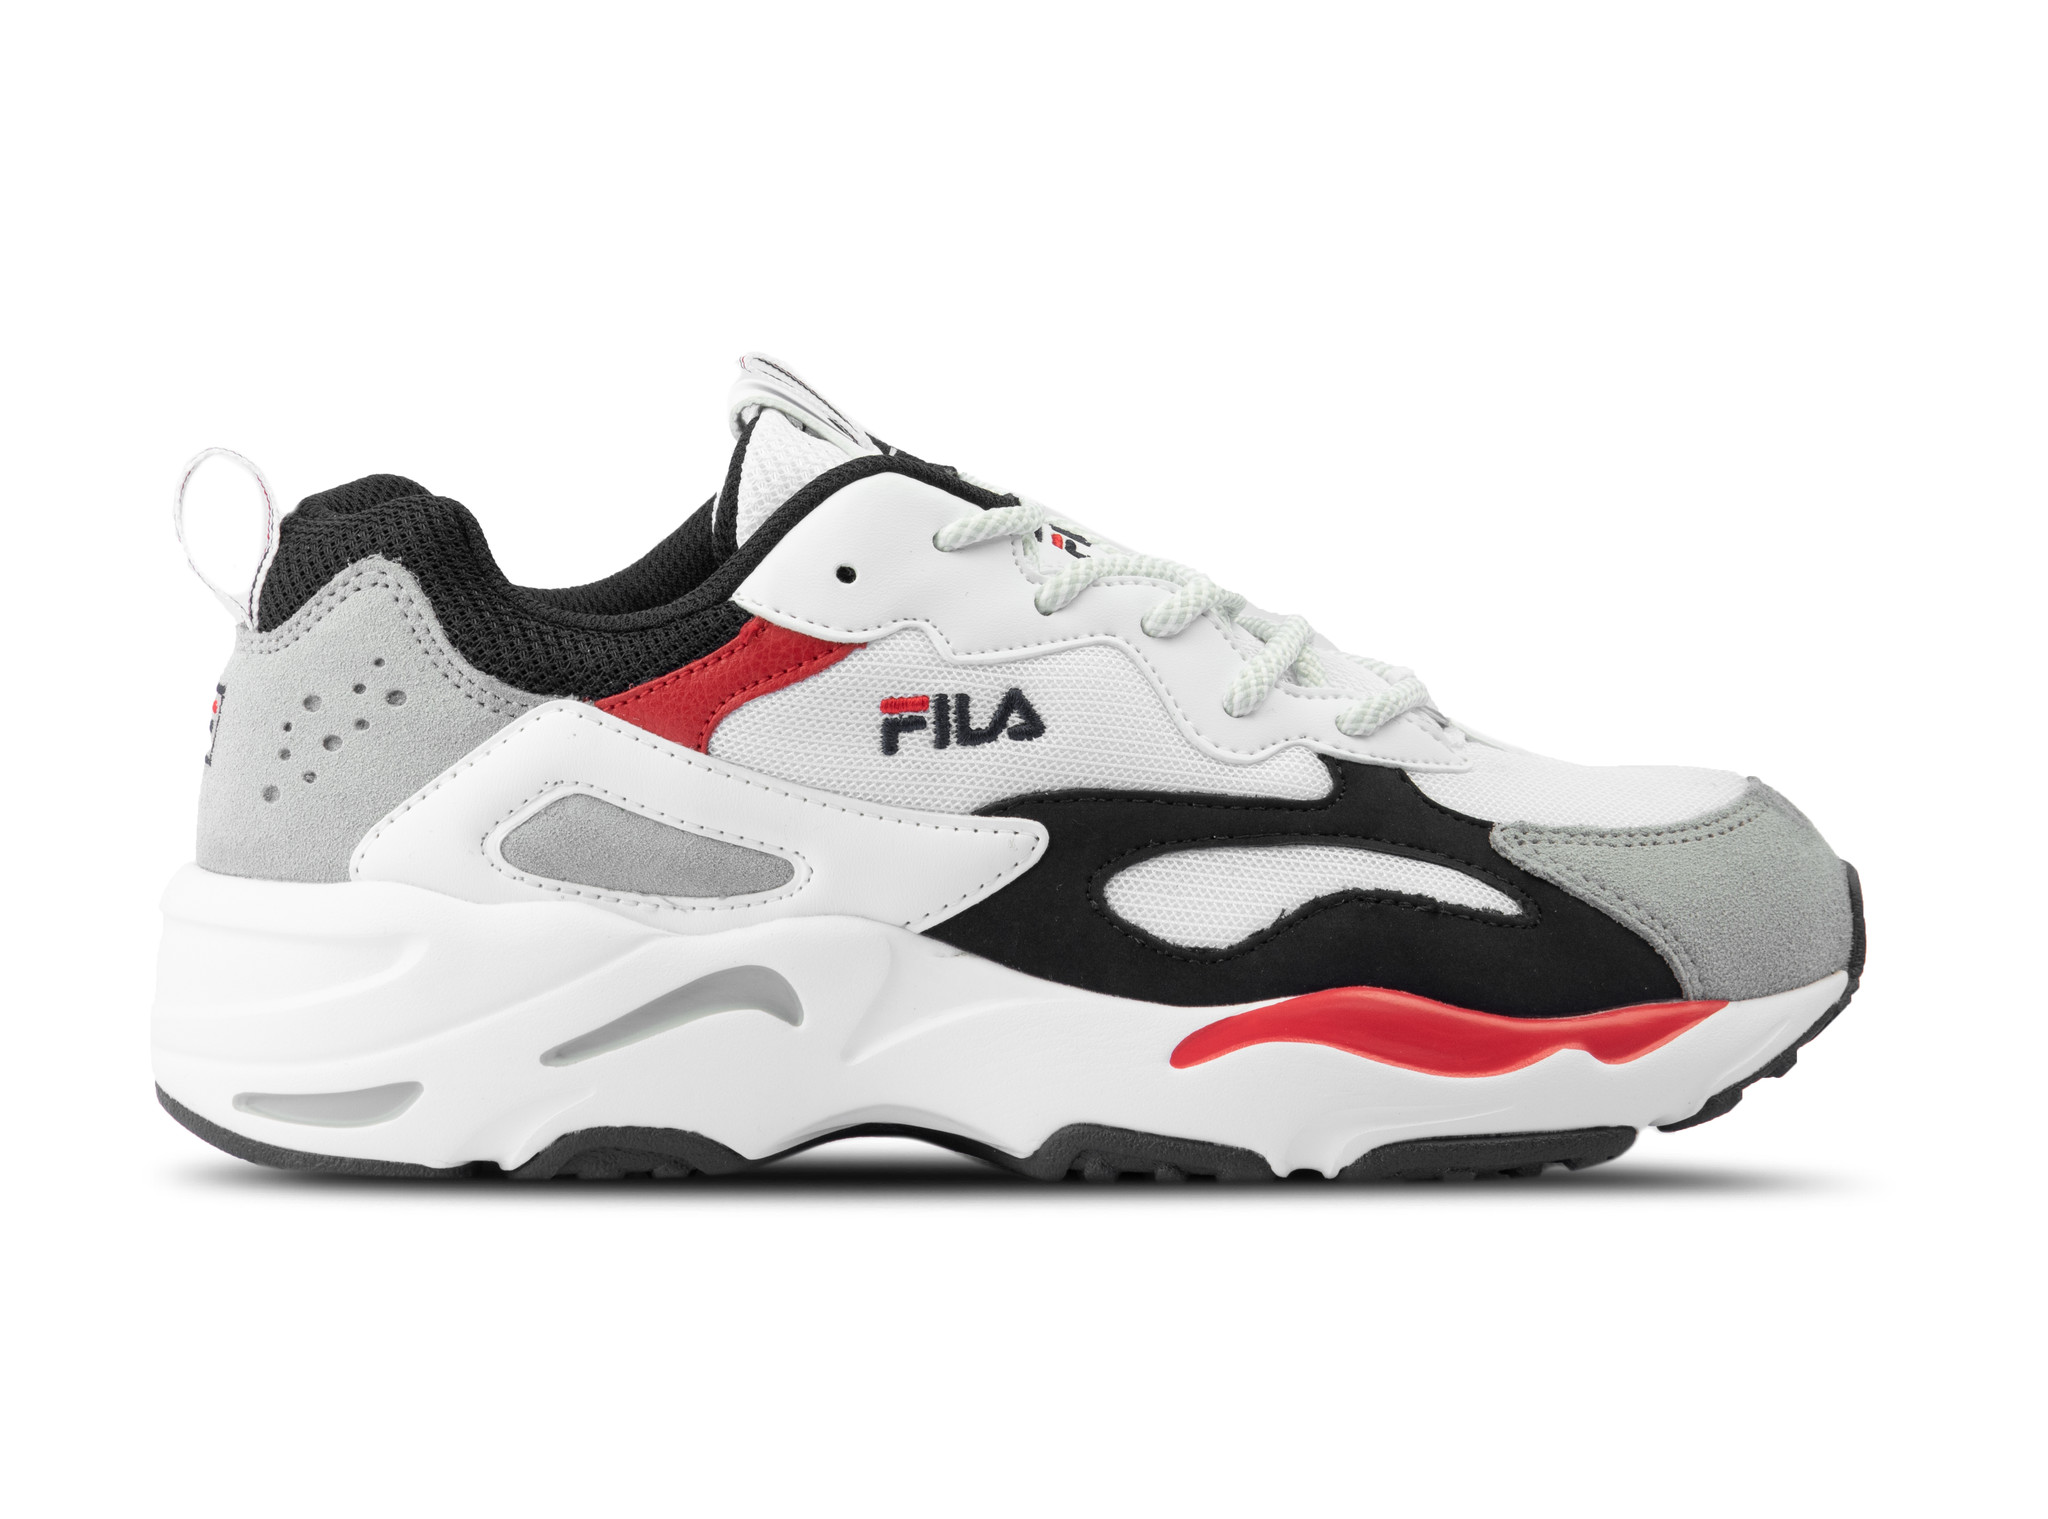 Fila Ray Tracer White Fila Navy Fila Red 1010685 01M | Bruut Online shop